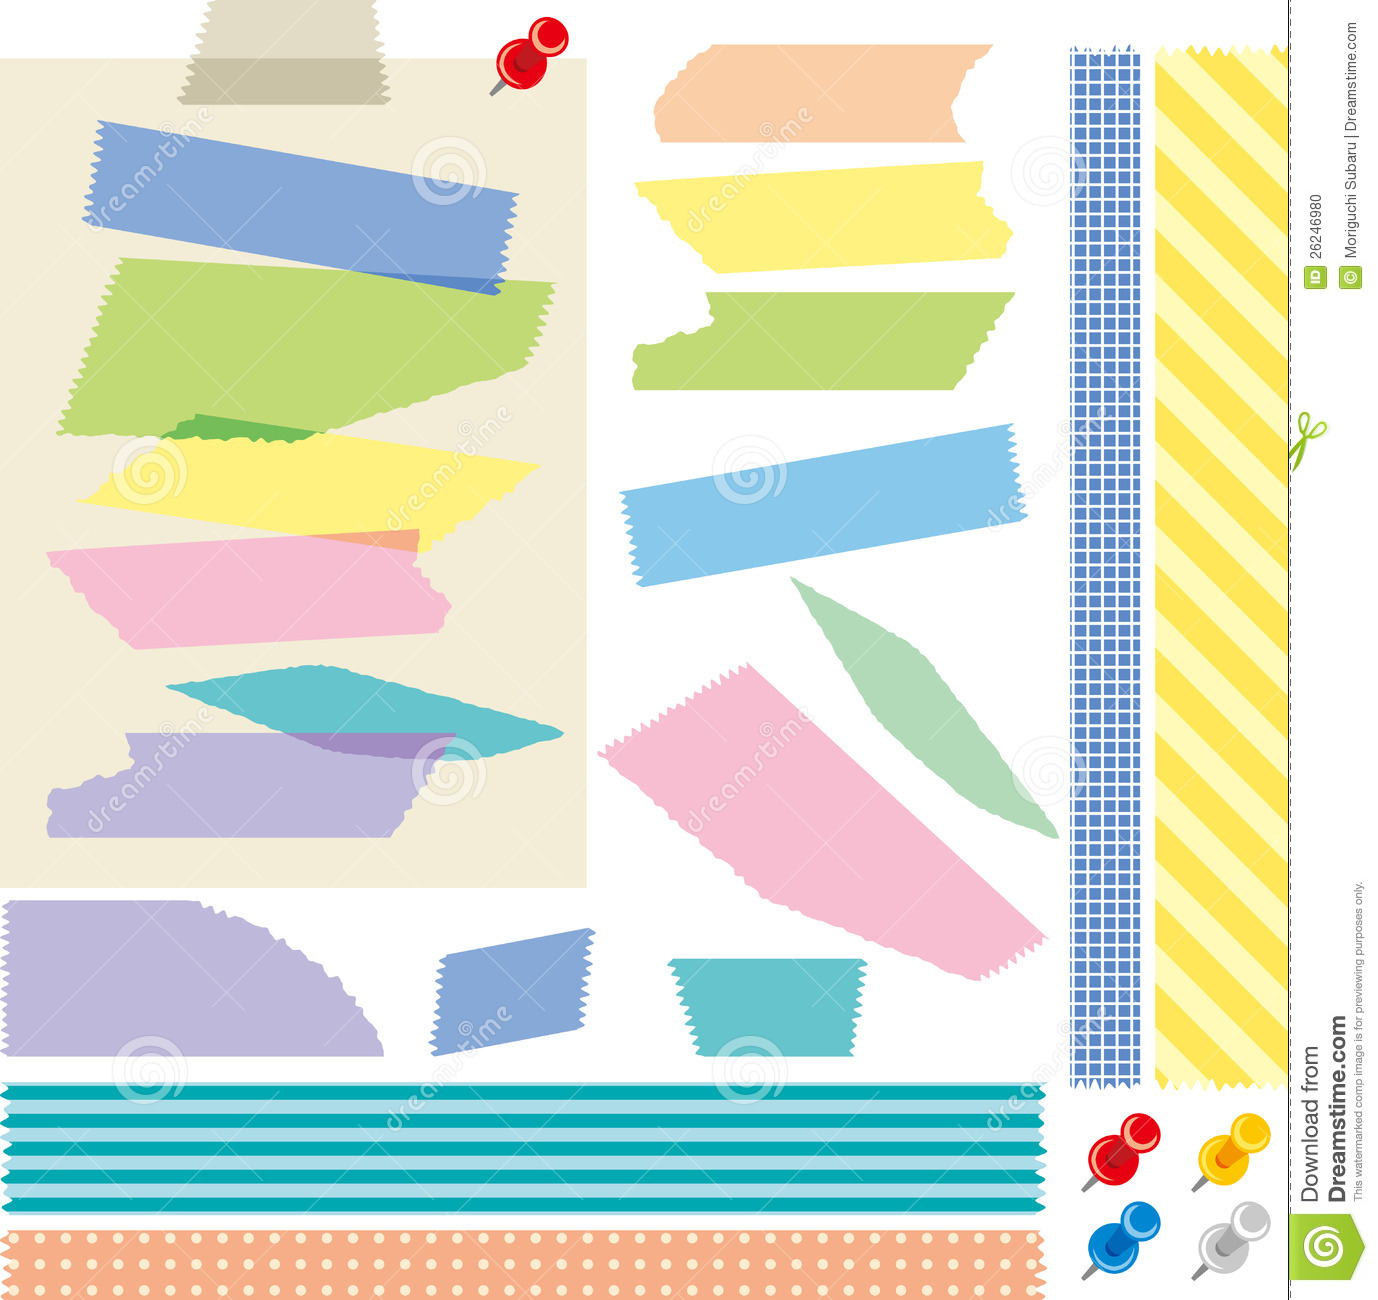 Scotch Tape Vector masking tape stock illustrations, vectors ...